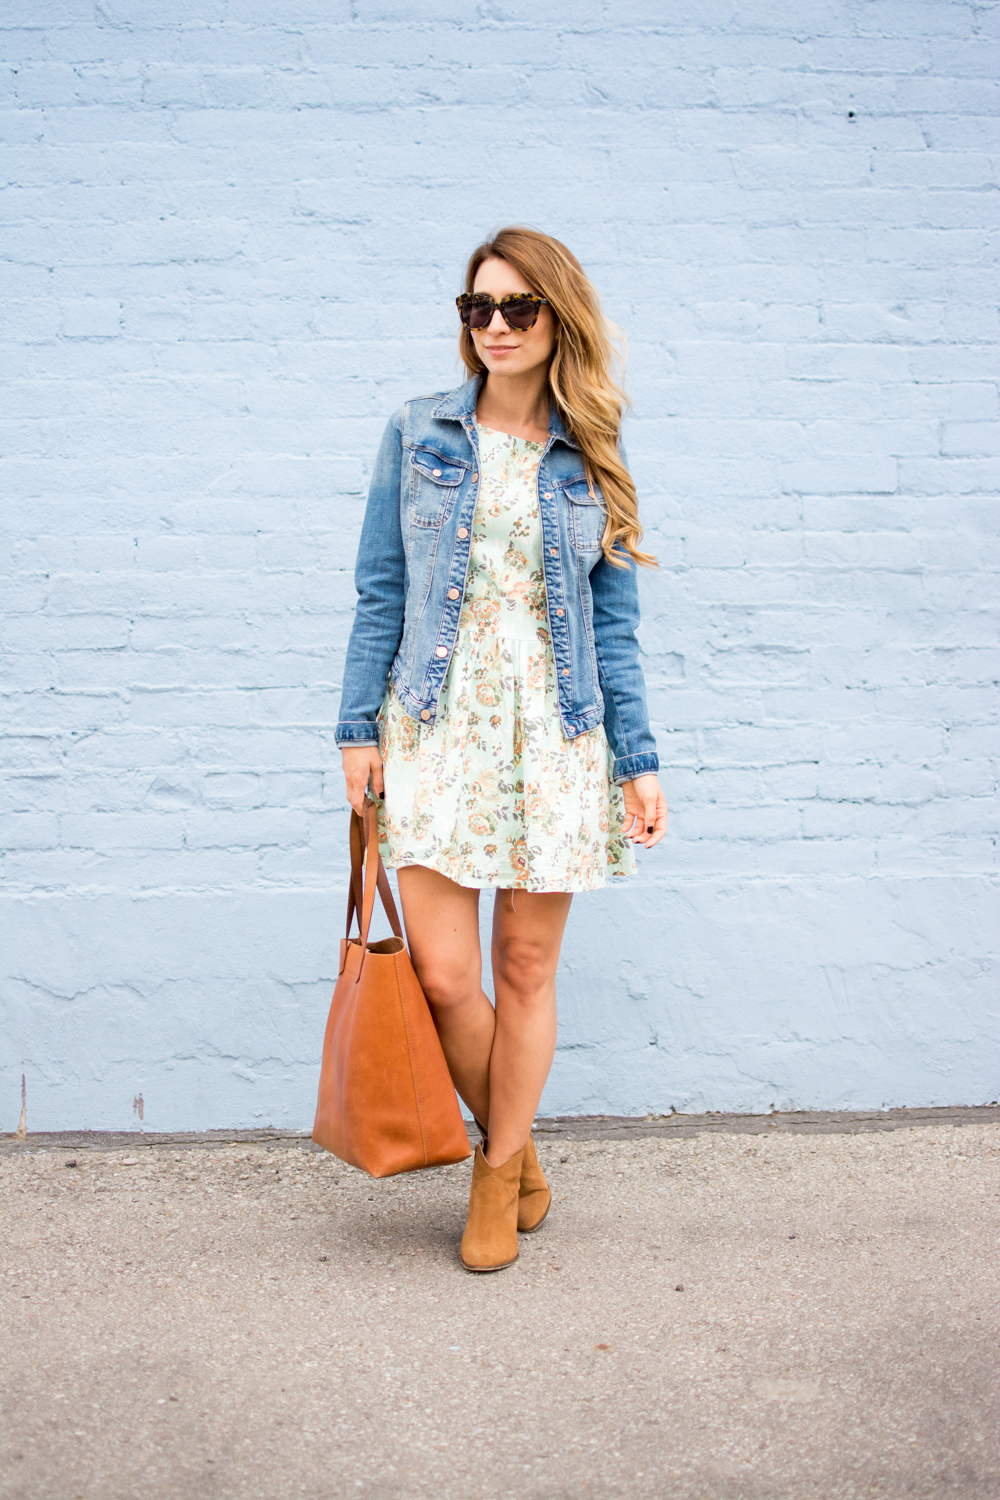 OOTD - Summer to Fall with a Denim Jacket and Booties | La Petite Noob | A Toronto-Based Fashion ...